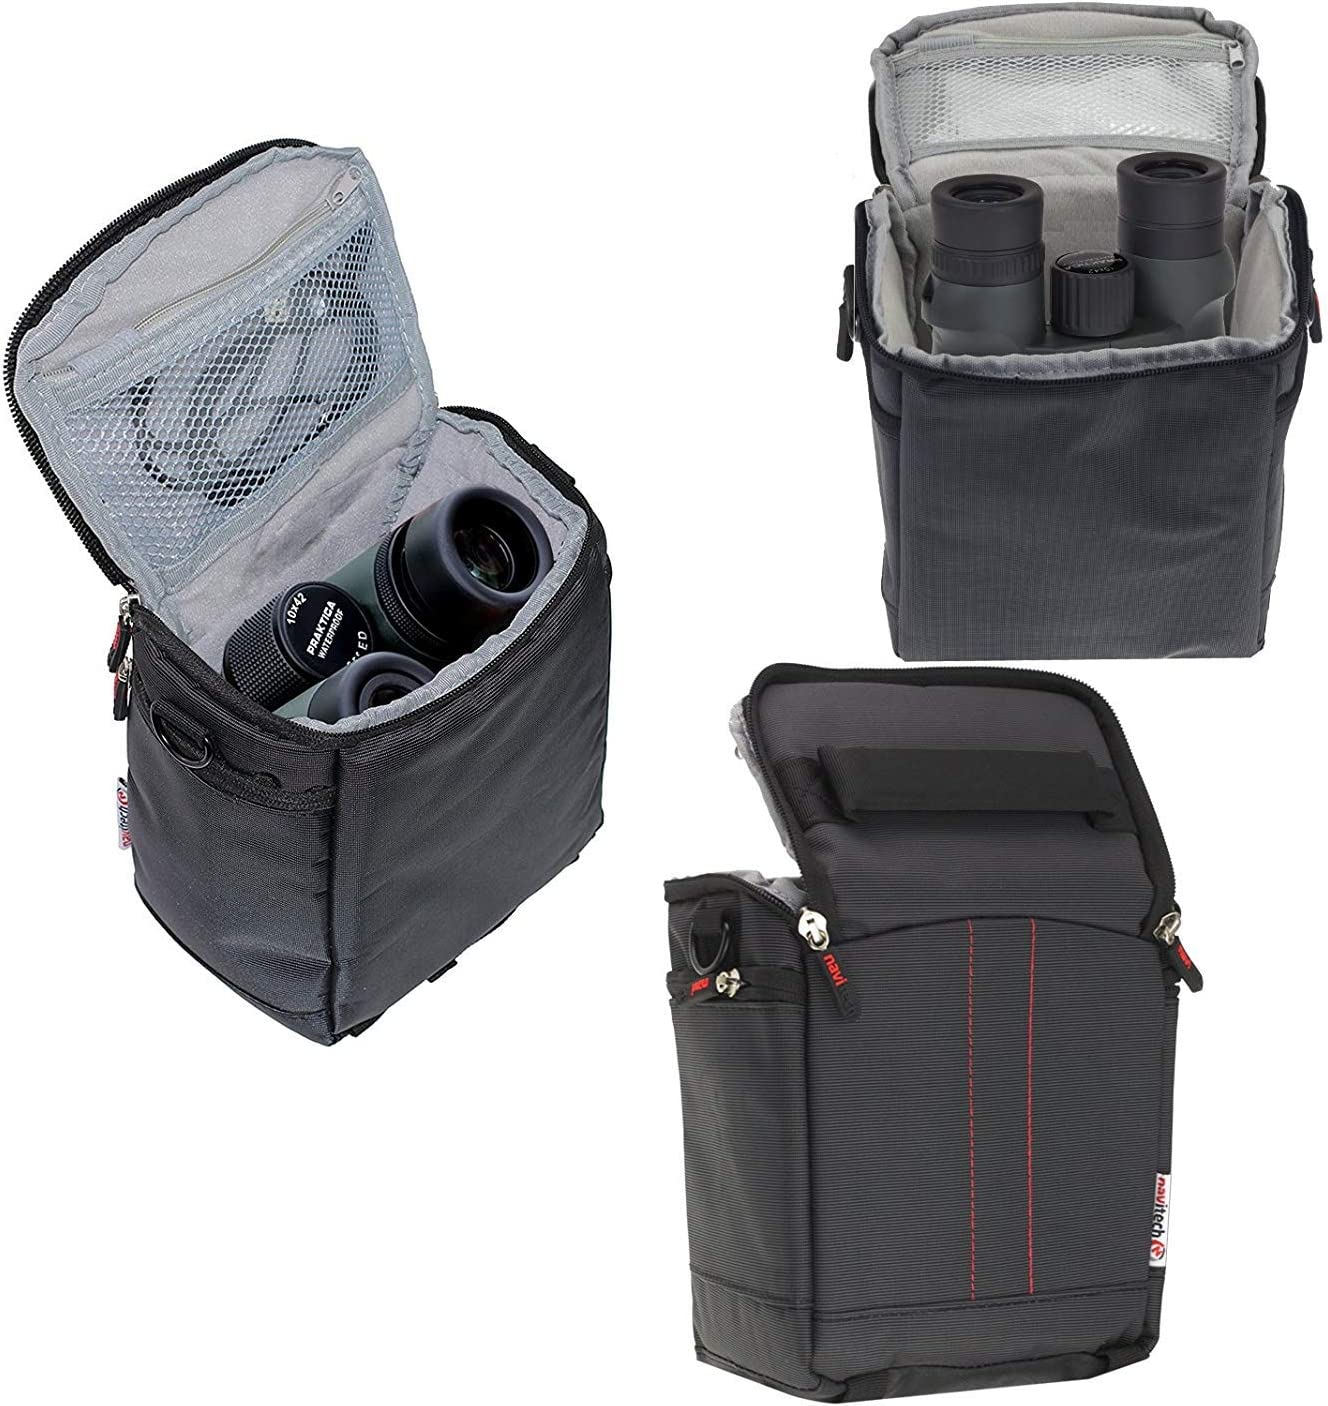 Navitech Black Protective Portable Handheld Binocular Case and Travel Bag Compatible with The Braun Premium 8 56 WP-ED